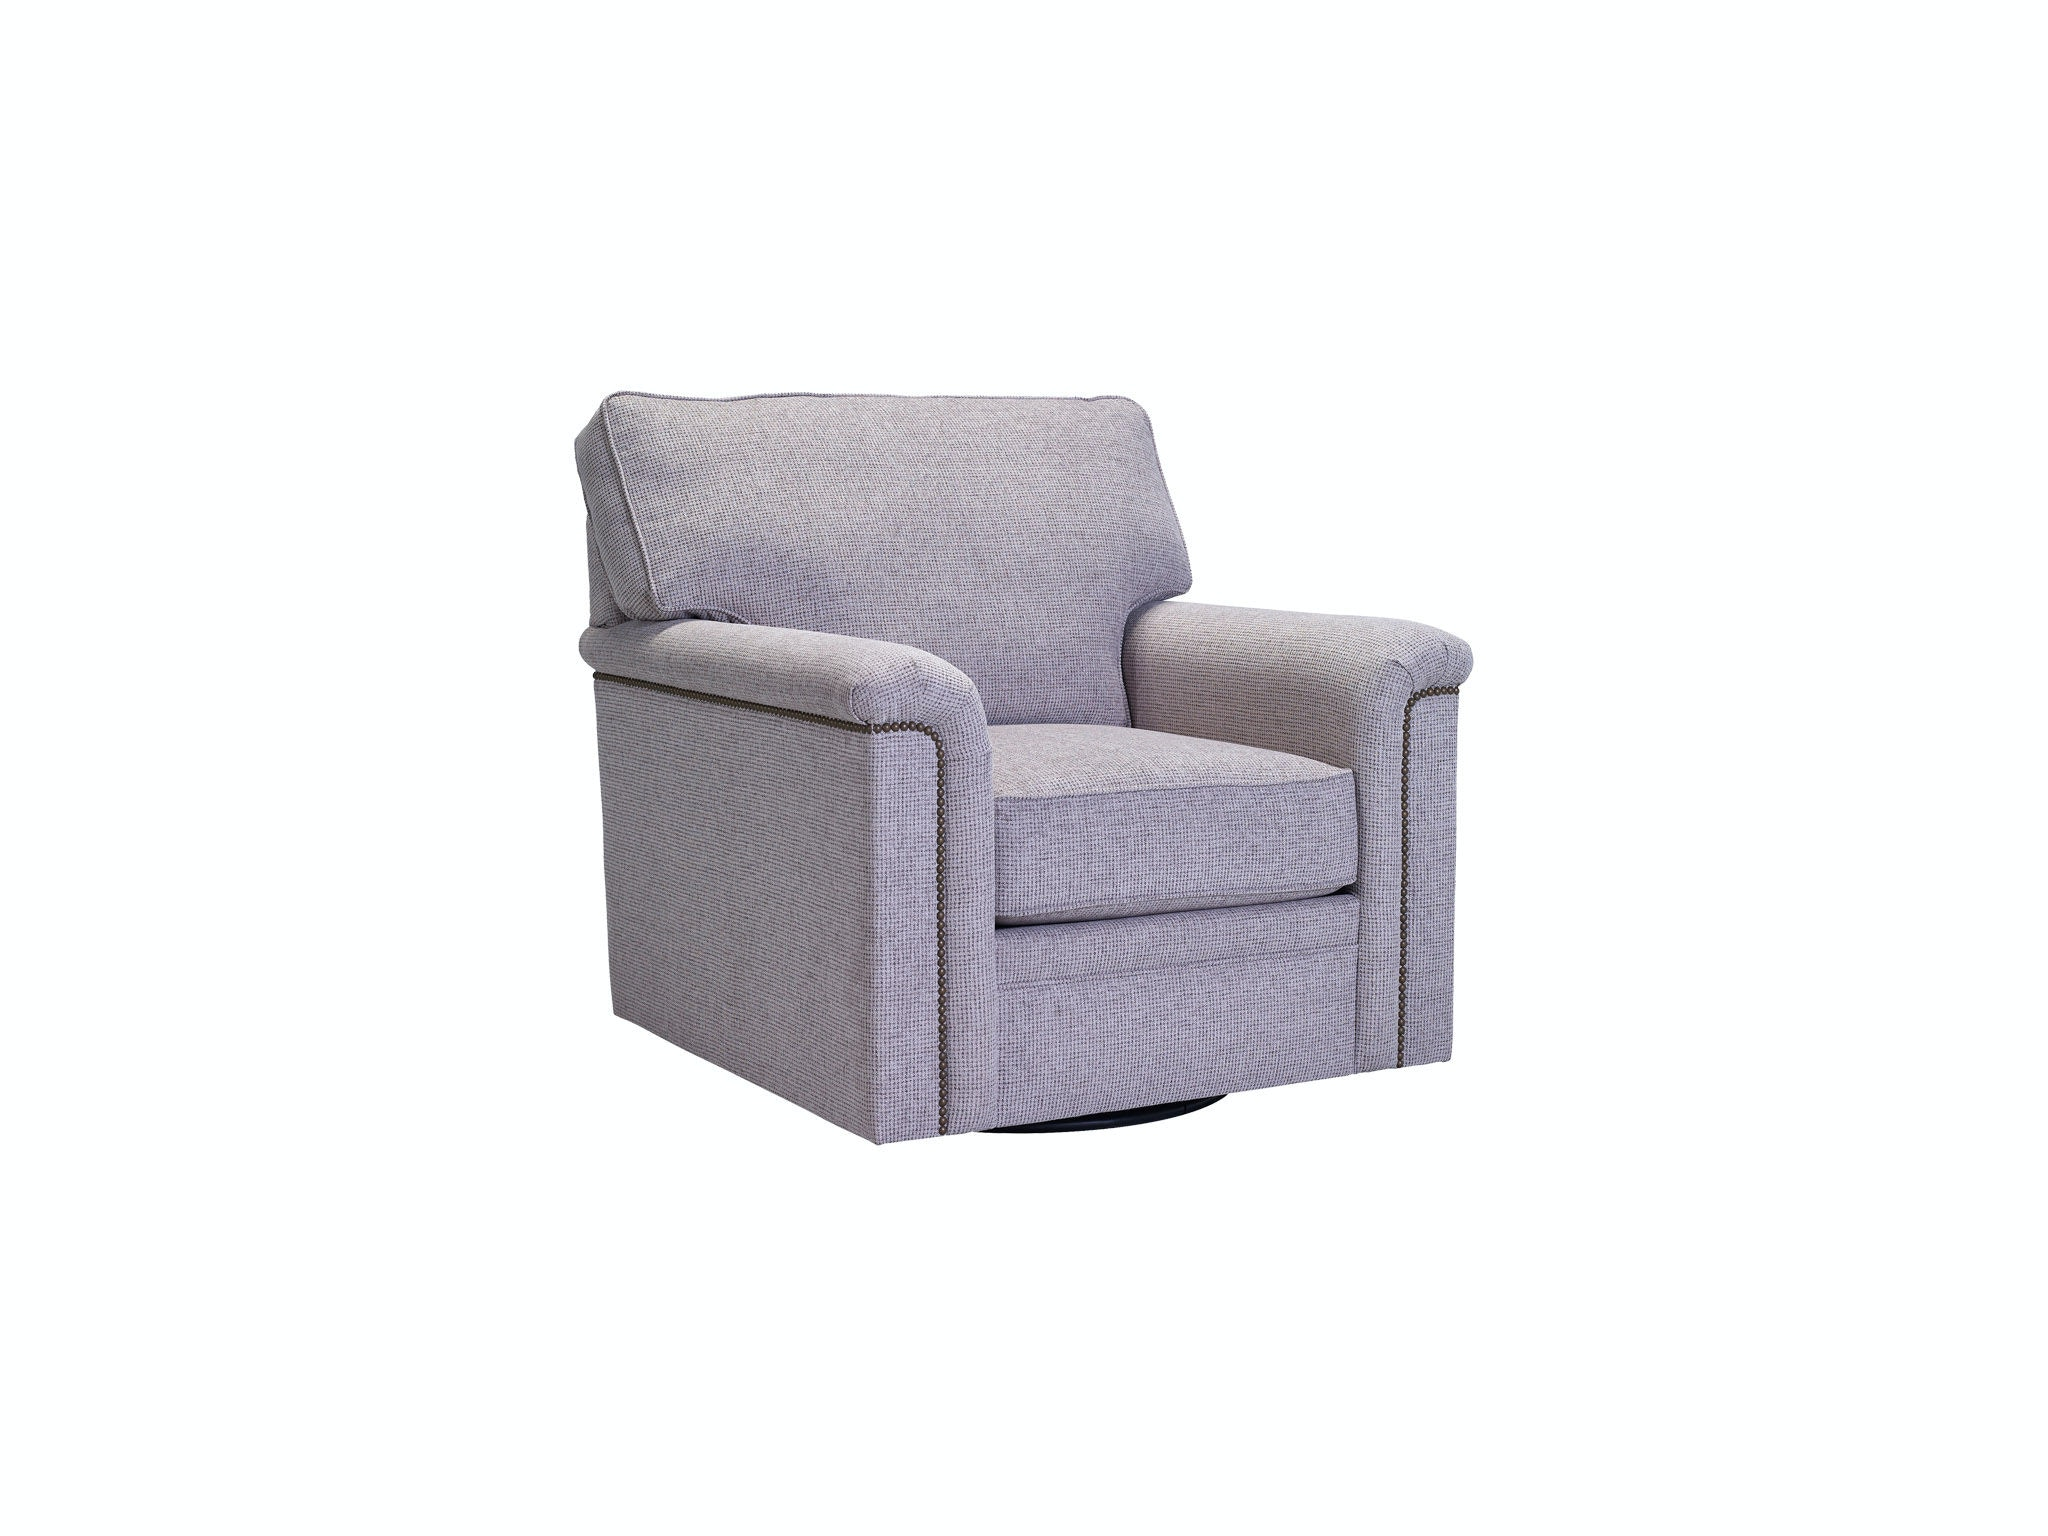 swivel chair office warehouse potty for special needs child broyhill living room warren 4287 8 at showrooms